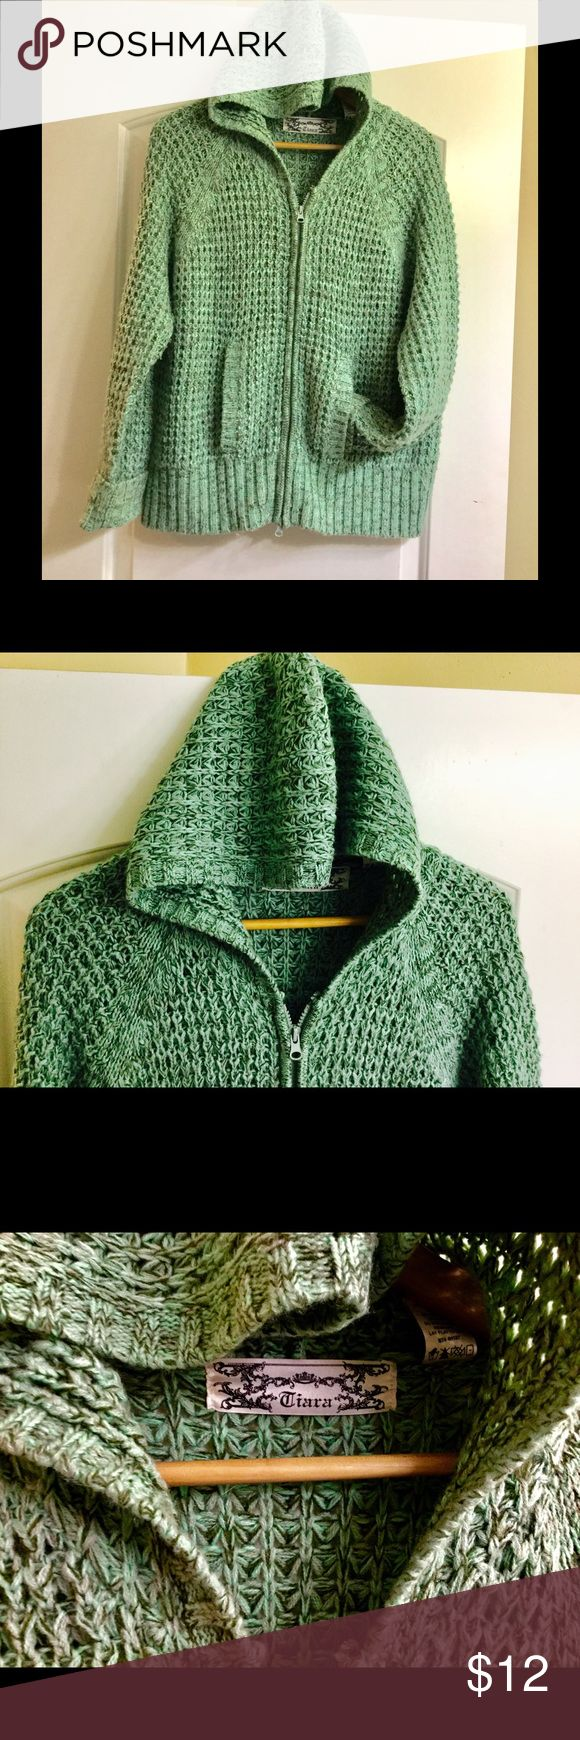 Light turquoise chunky knit zip up hoodie sweater Light turquoise chunky knit zip up hoodie sweater by Ciara This listing is for a light turquoise chunky knit zip up hoodie sweater by Ciara size xl fits large and medium if you like oversized sweaters, it is light turquoise mostly but there is light gray and like an olive green knitted into it as well very pretty and unique I wore this a couple times and every time I would wear it I would get compliments pictures do the sweater no justice…